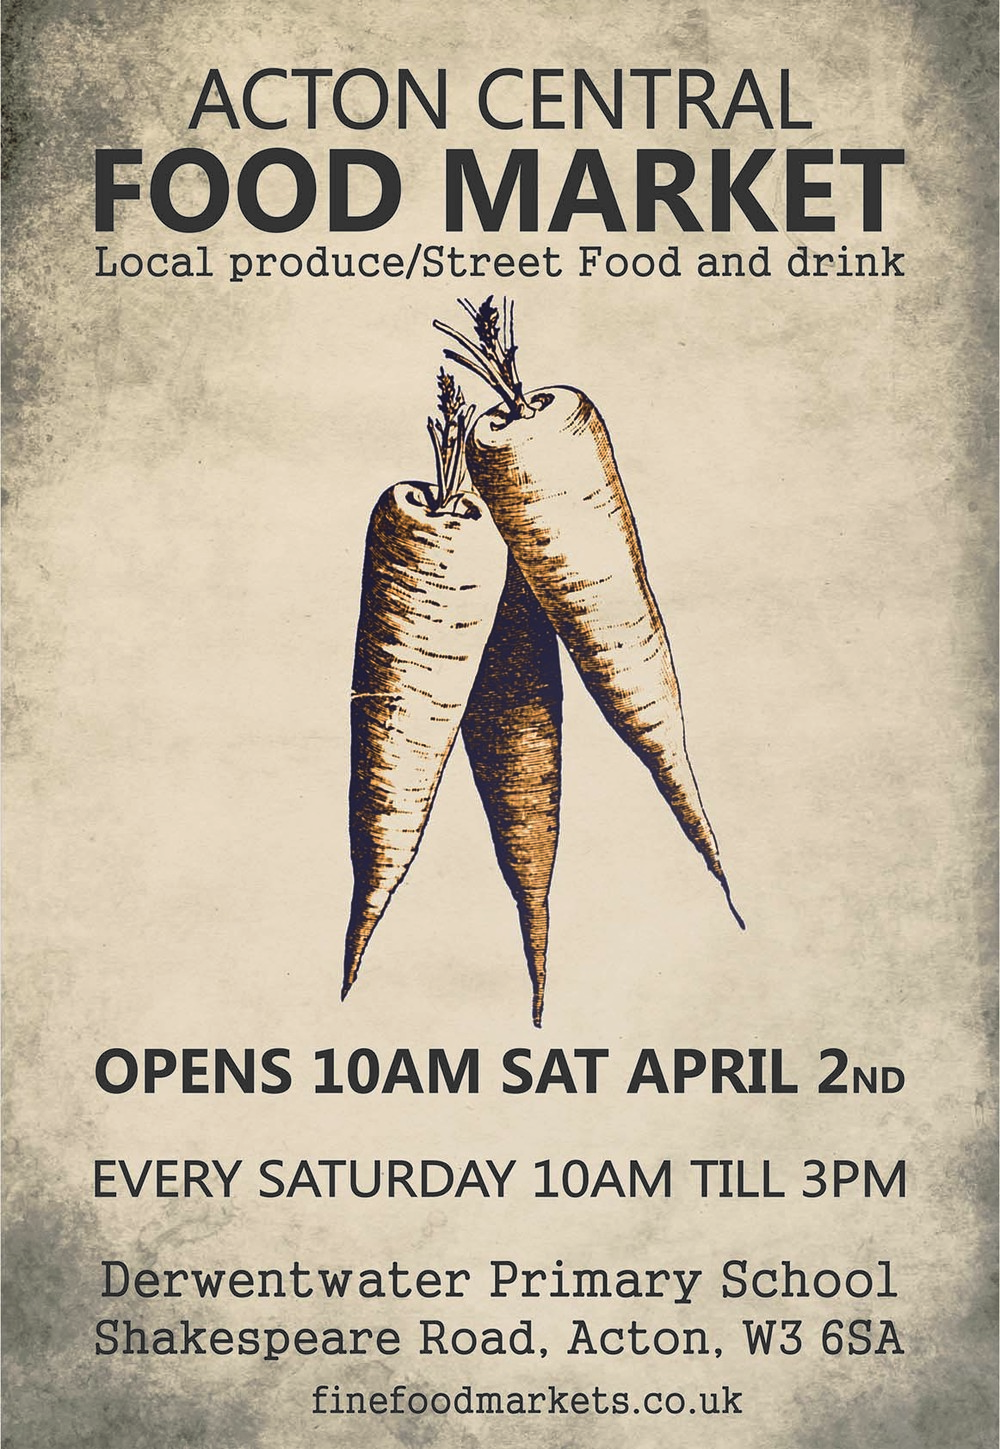 Acton central food market. Local produce/street food and drink. Every Saturday 10am till 3pm. Derwentwater Primary School Shakespeare Road, Acton W3 6SA